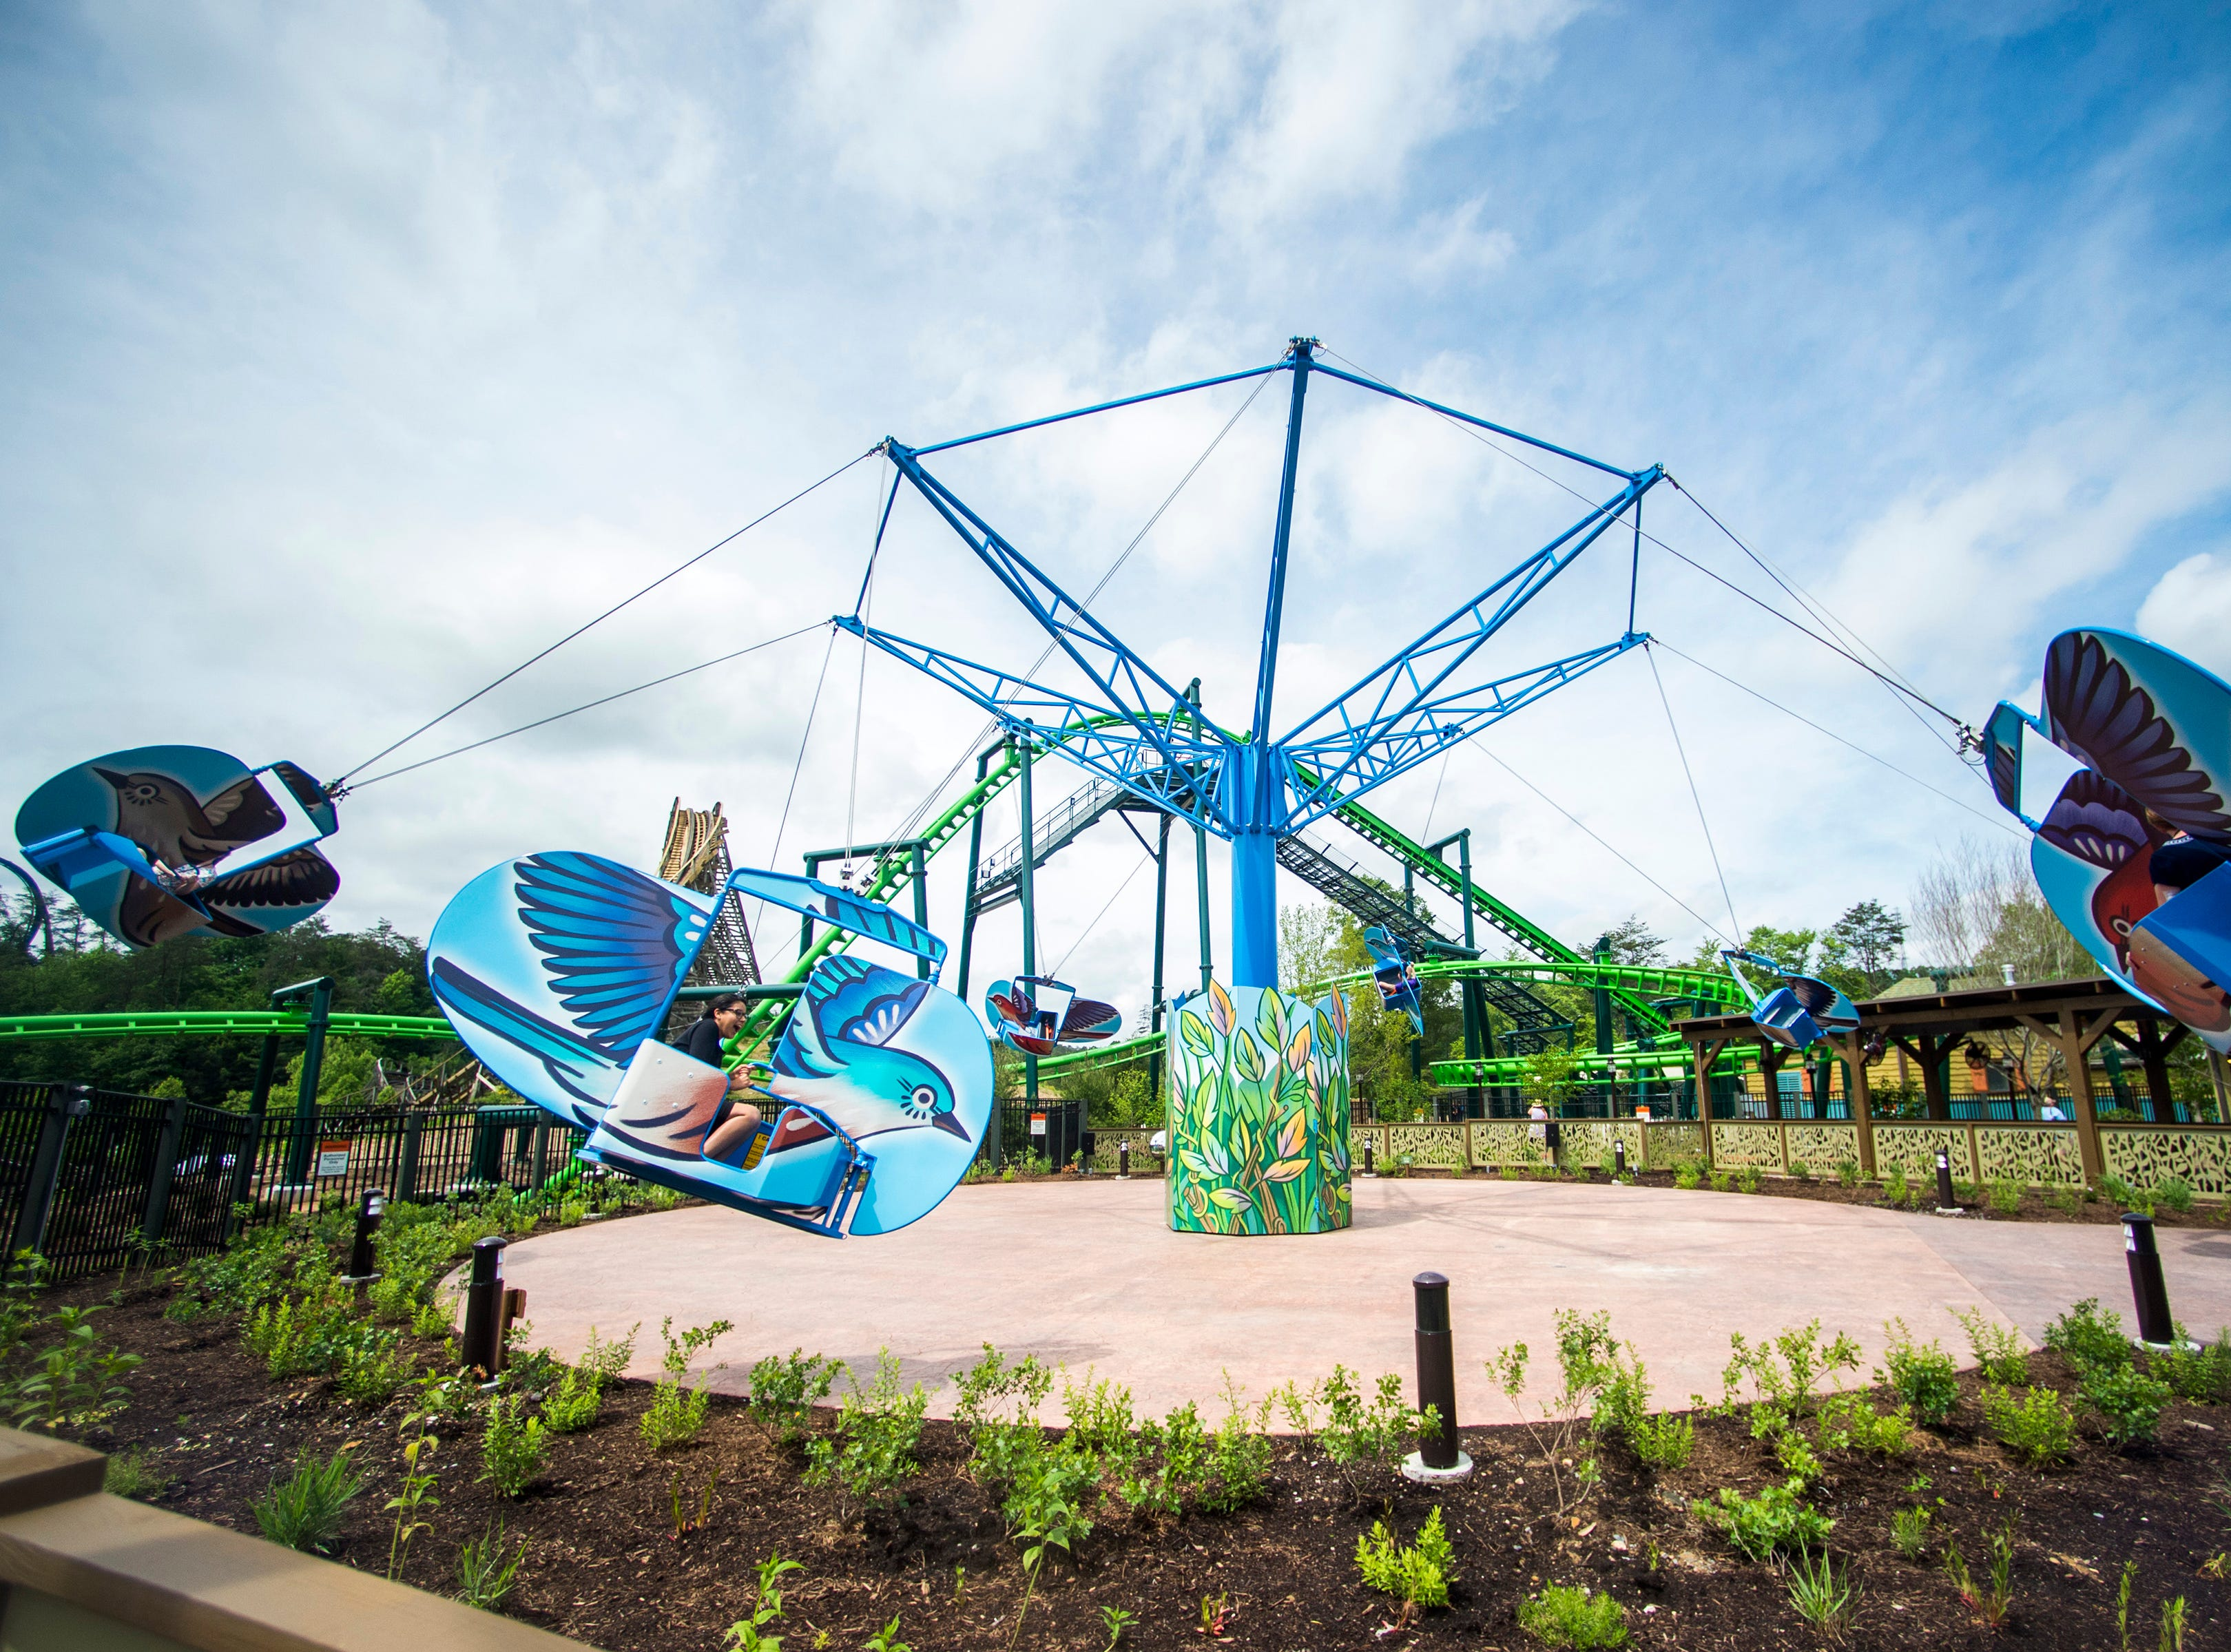 The Mad Mockingbird ride during the grand opening of Dollywood's new Wildwood Grove expansion on Friday, May 10, 2019.